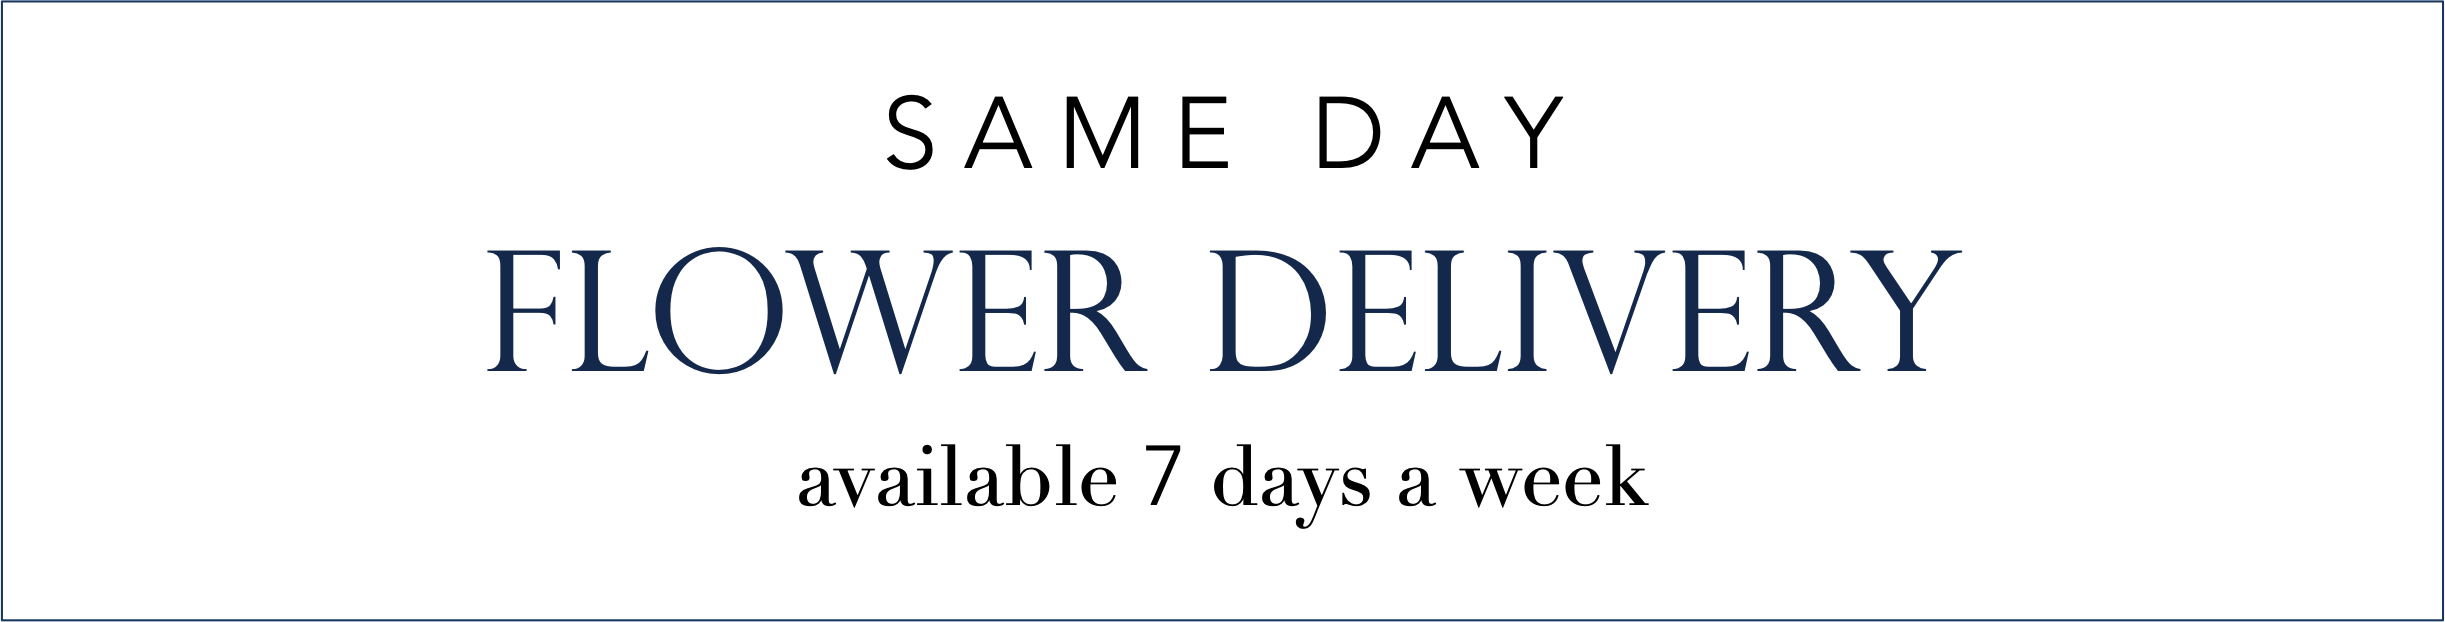 same-day-flower-delivery-angies-floral-designs-el-paso-texas-79912.png